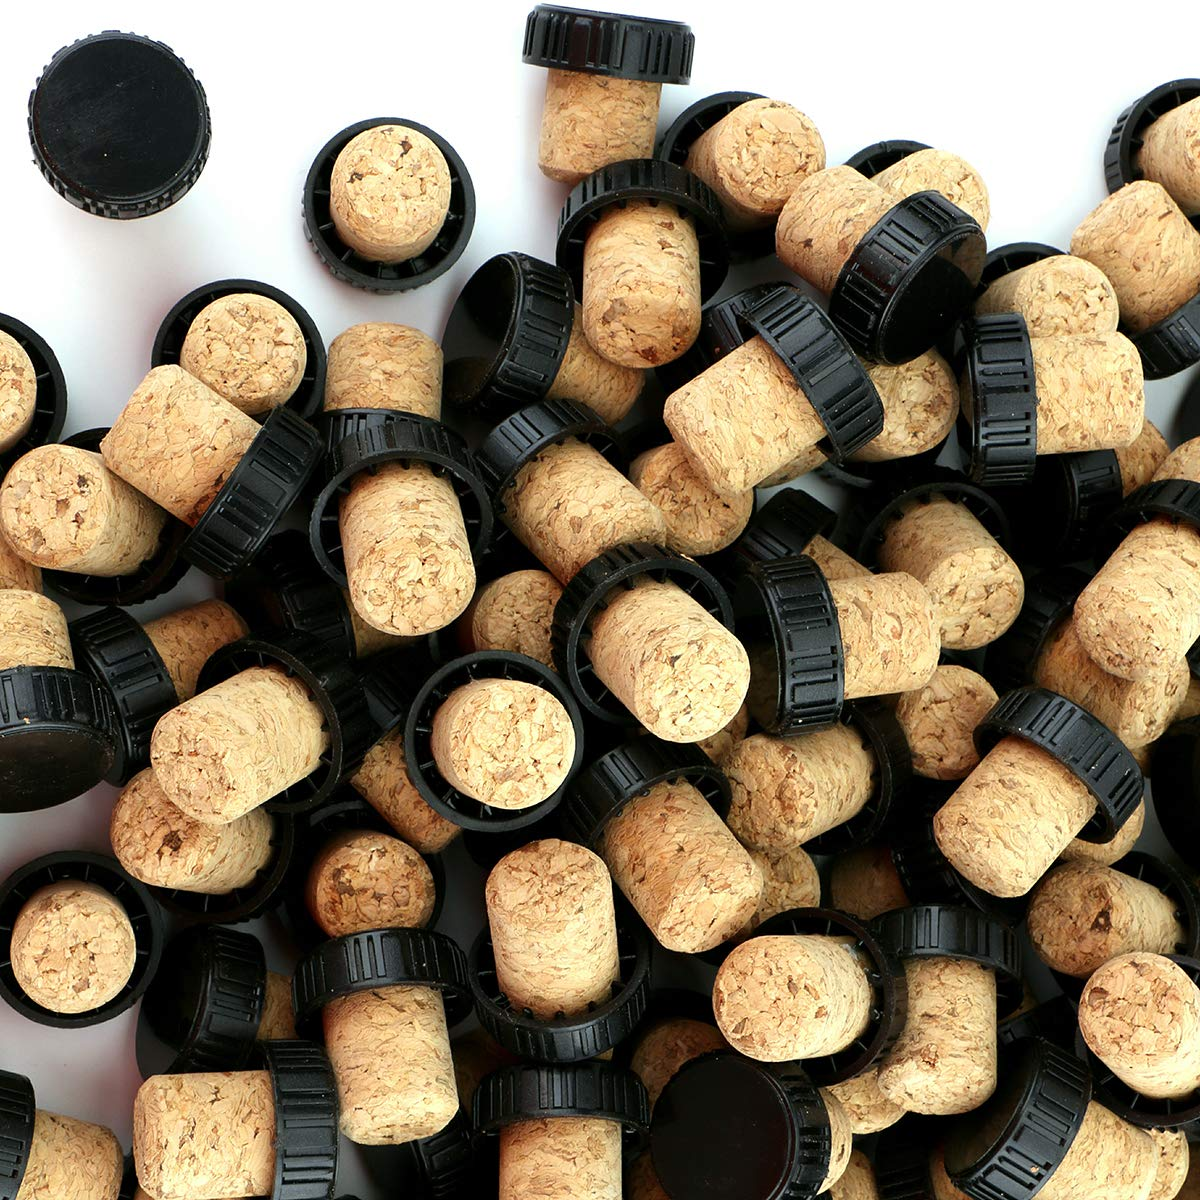 Foraineam 120 Pieces 20mm Agglomerated Tasting Cork, T-Shape Wine Corks with Black Plastic Top by Foraineam